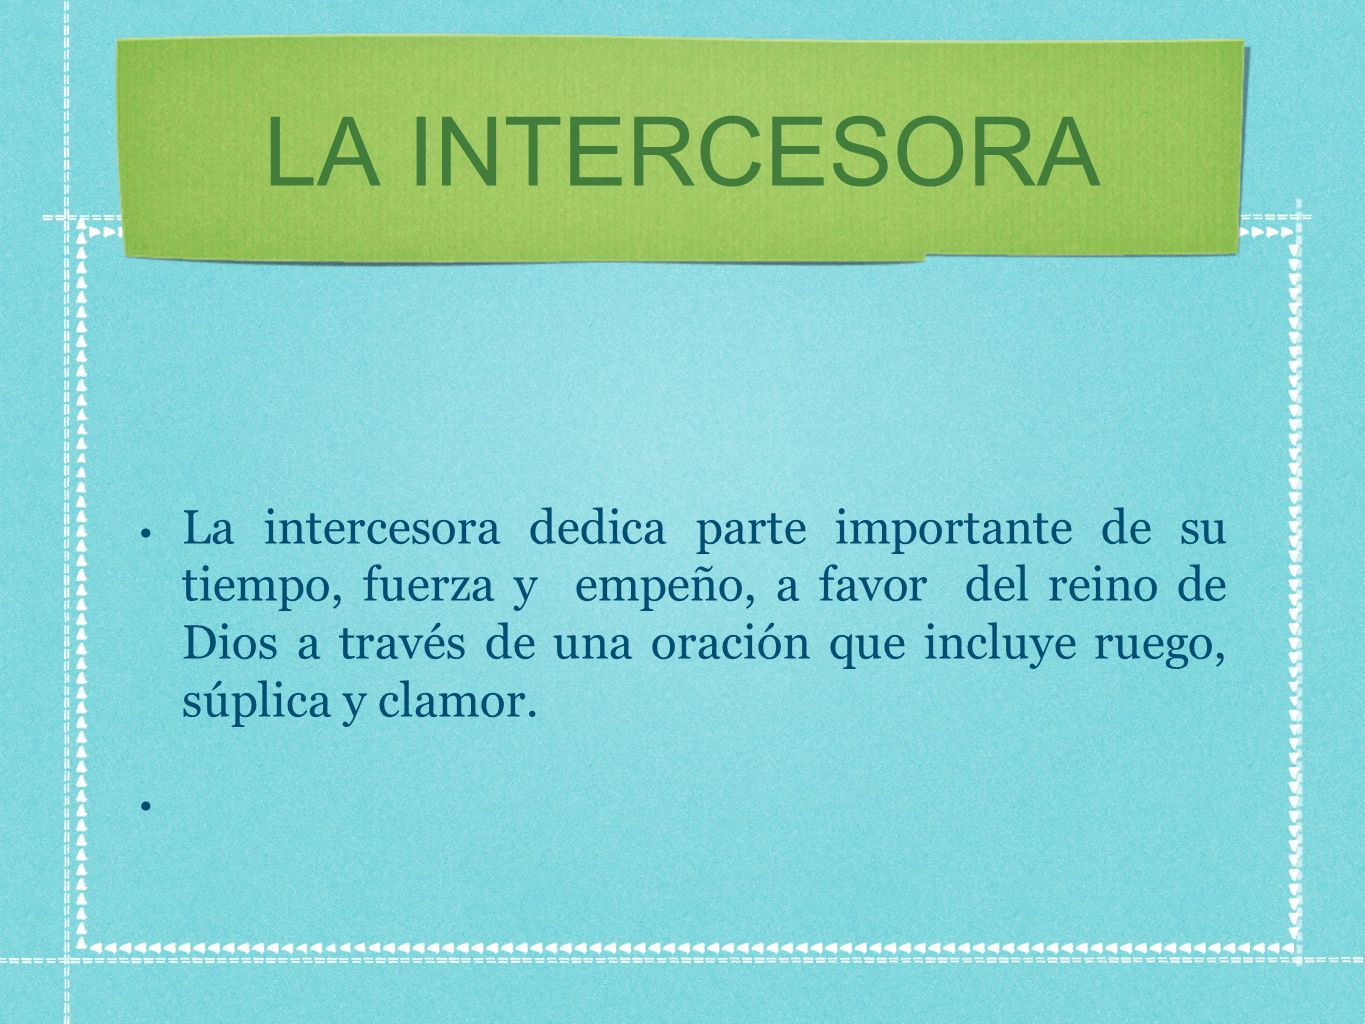 LA INTERCESORA